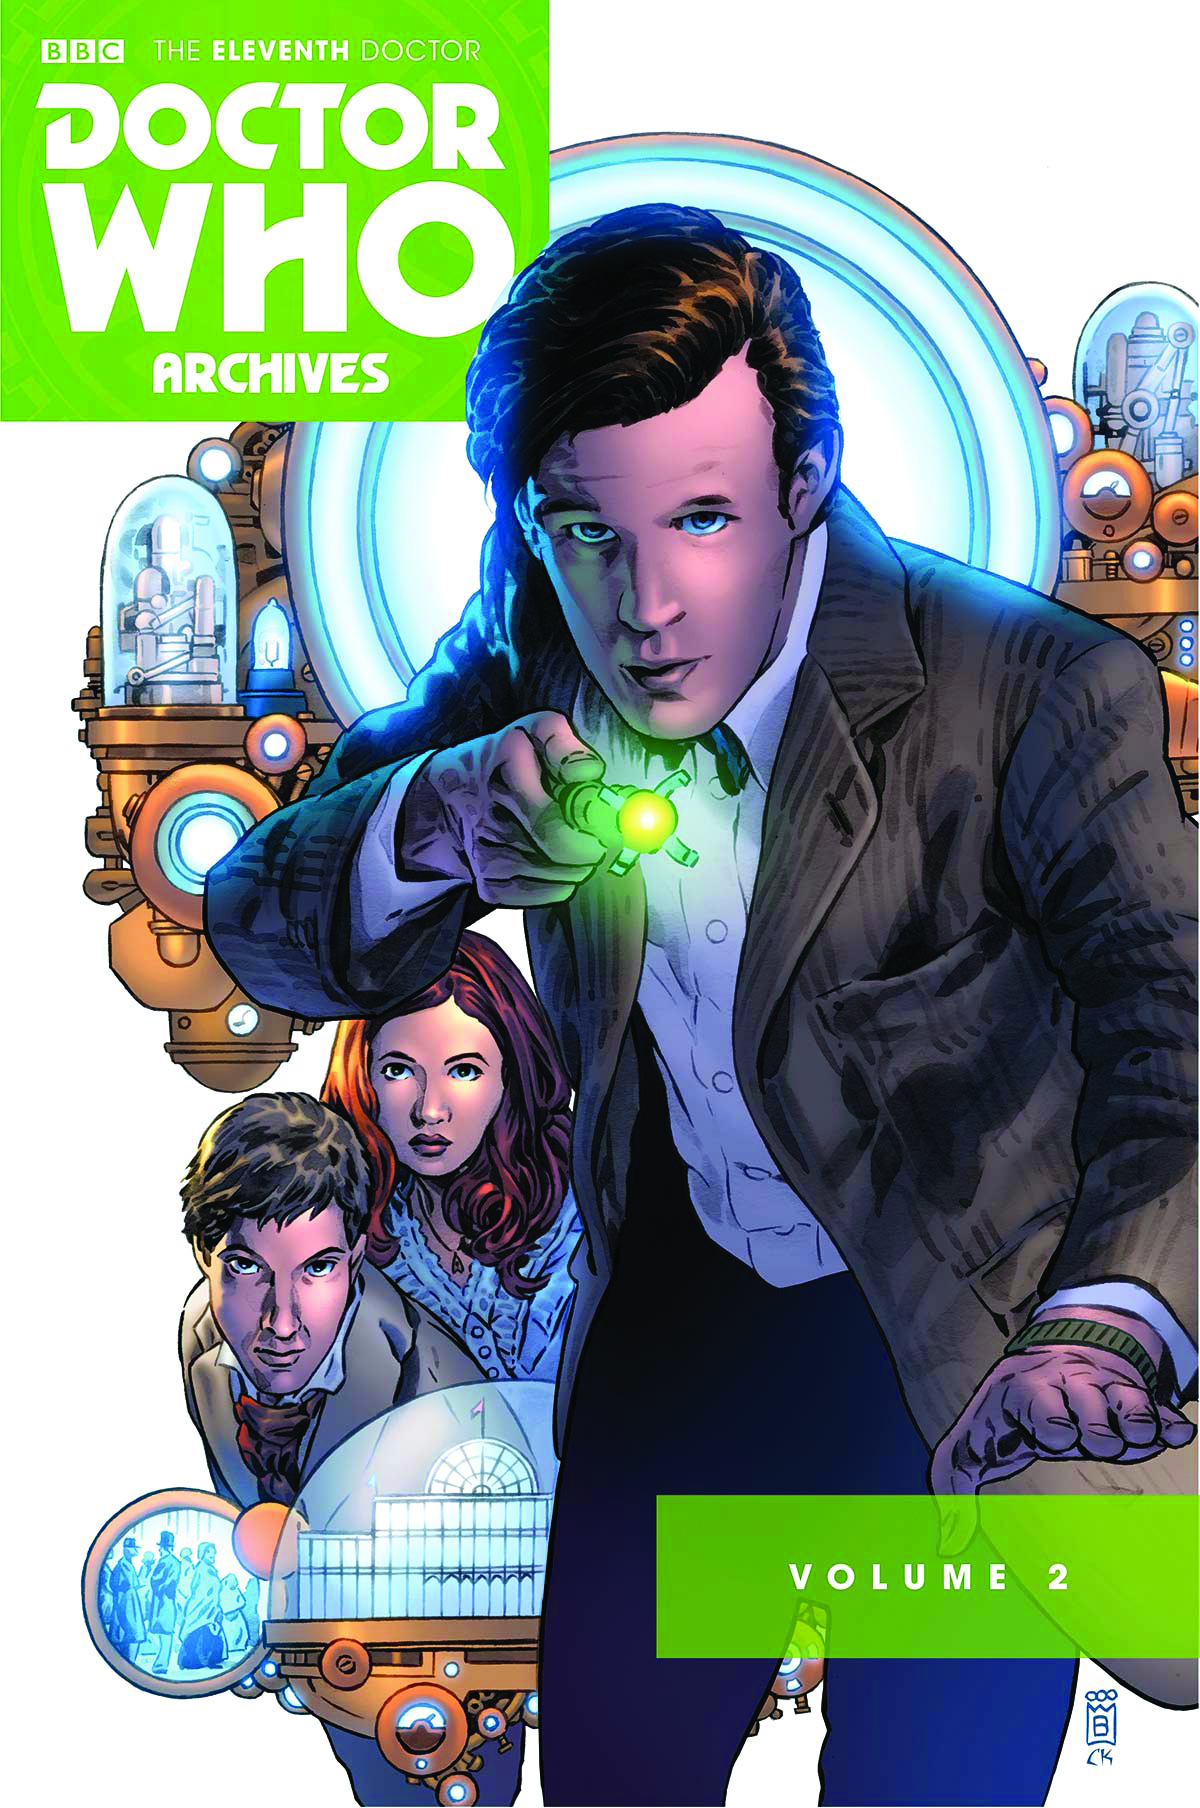 (USE APR188687) DOCTOR WHO 11TH ARCHIVES OMNIBUS TP VOL 02 (